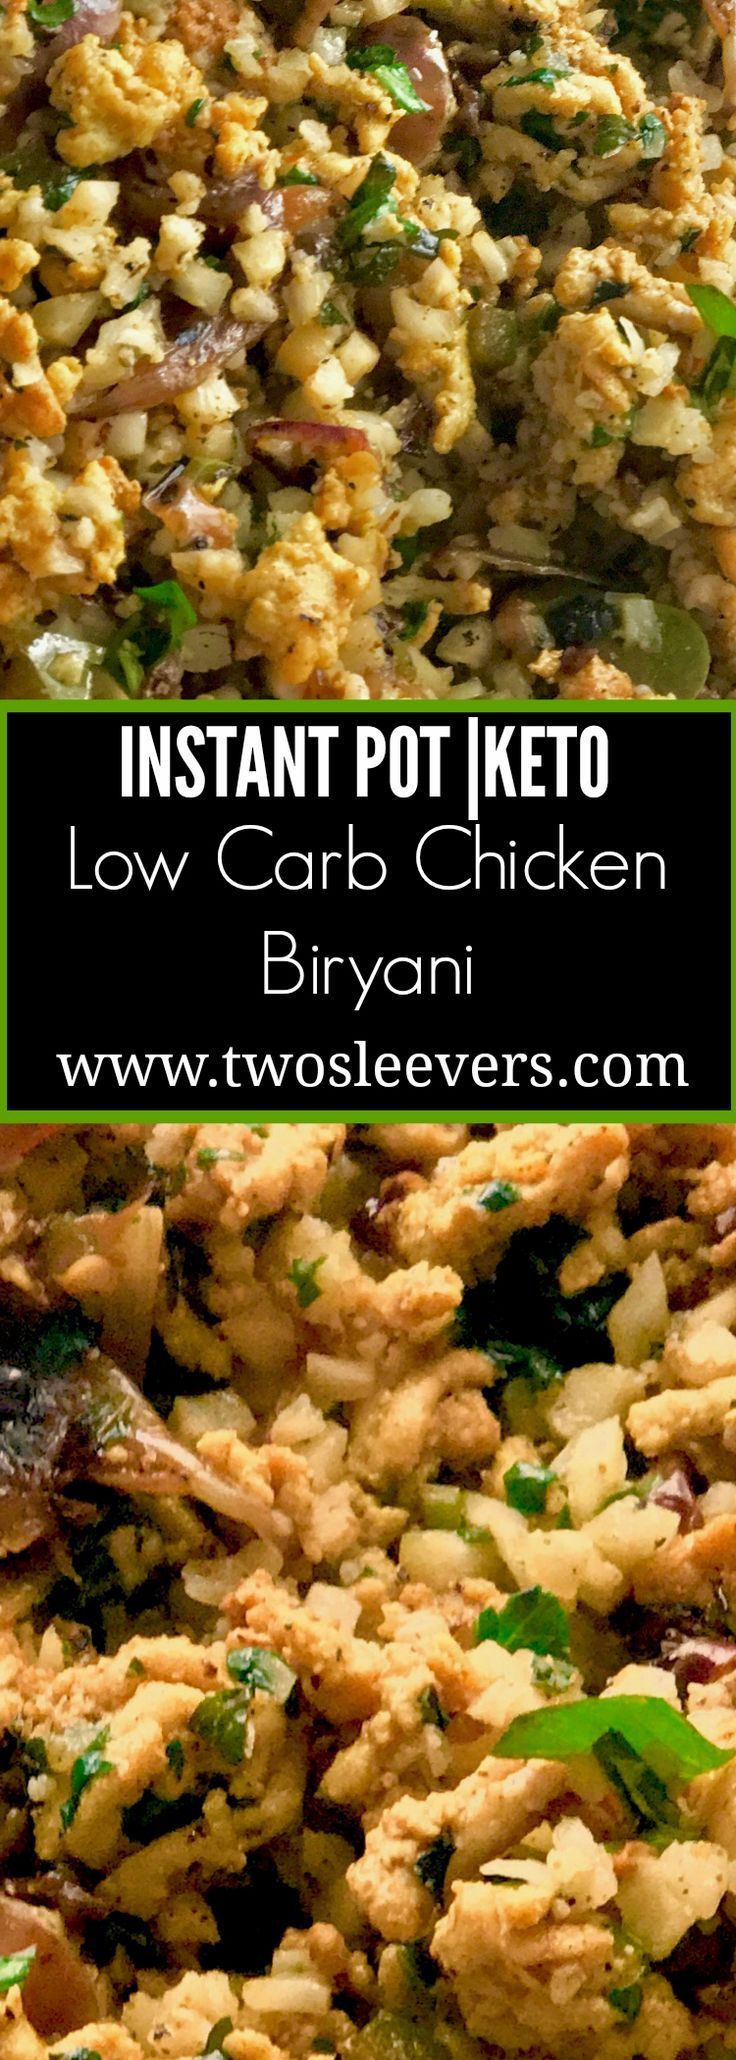 Low Carb Chicken Biryani, Low Carb Chicken Biryani is Keto Indian Food at it's best. Cauliflower and ground chicken make up this spicy, delicious low carb recipe. Two Sleevers